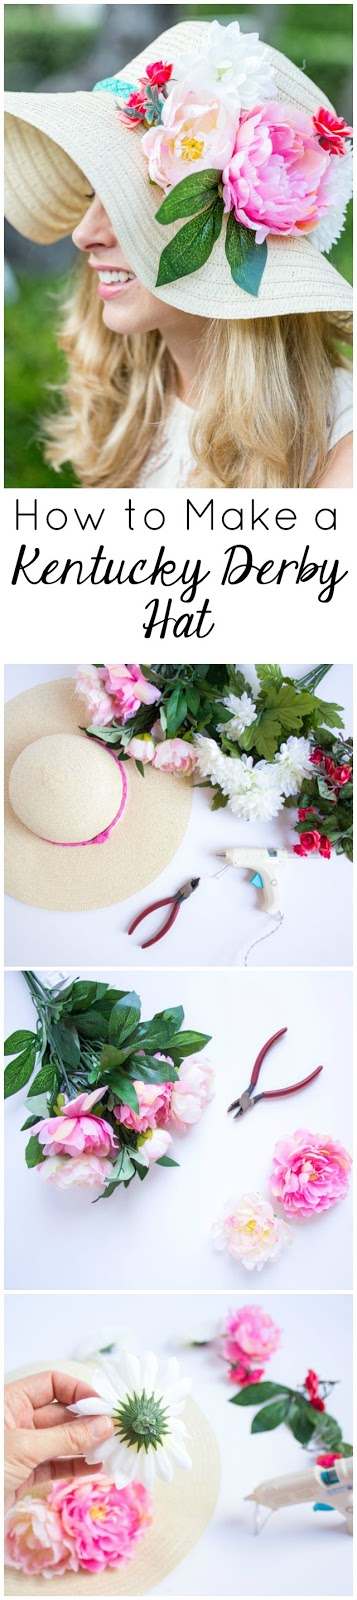 Make a gorgeous floral Kentucky Derby hat for under $10!